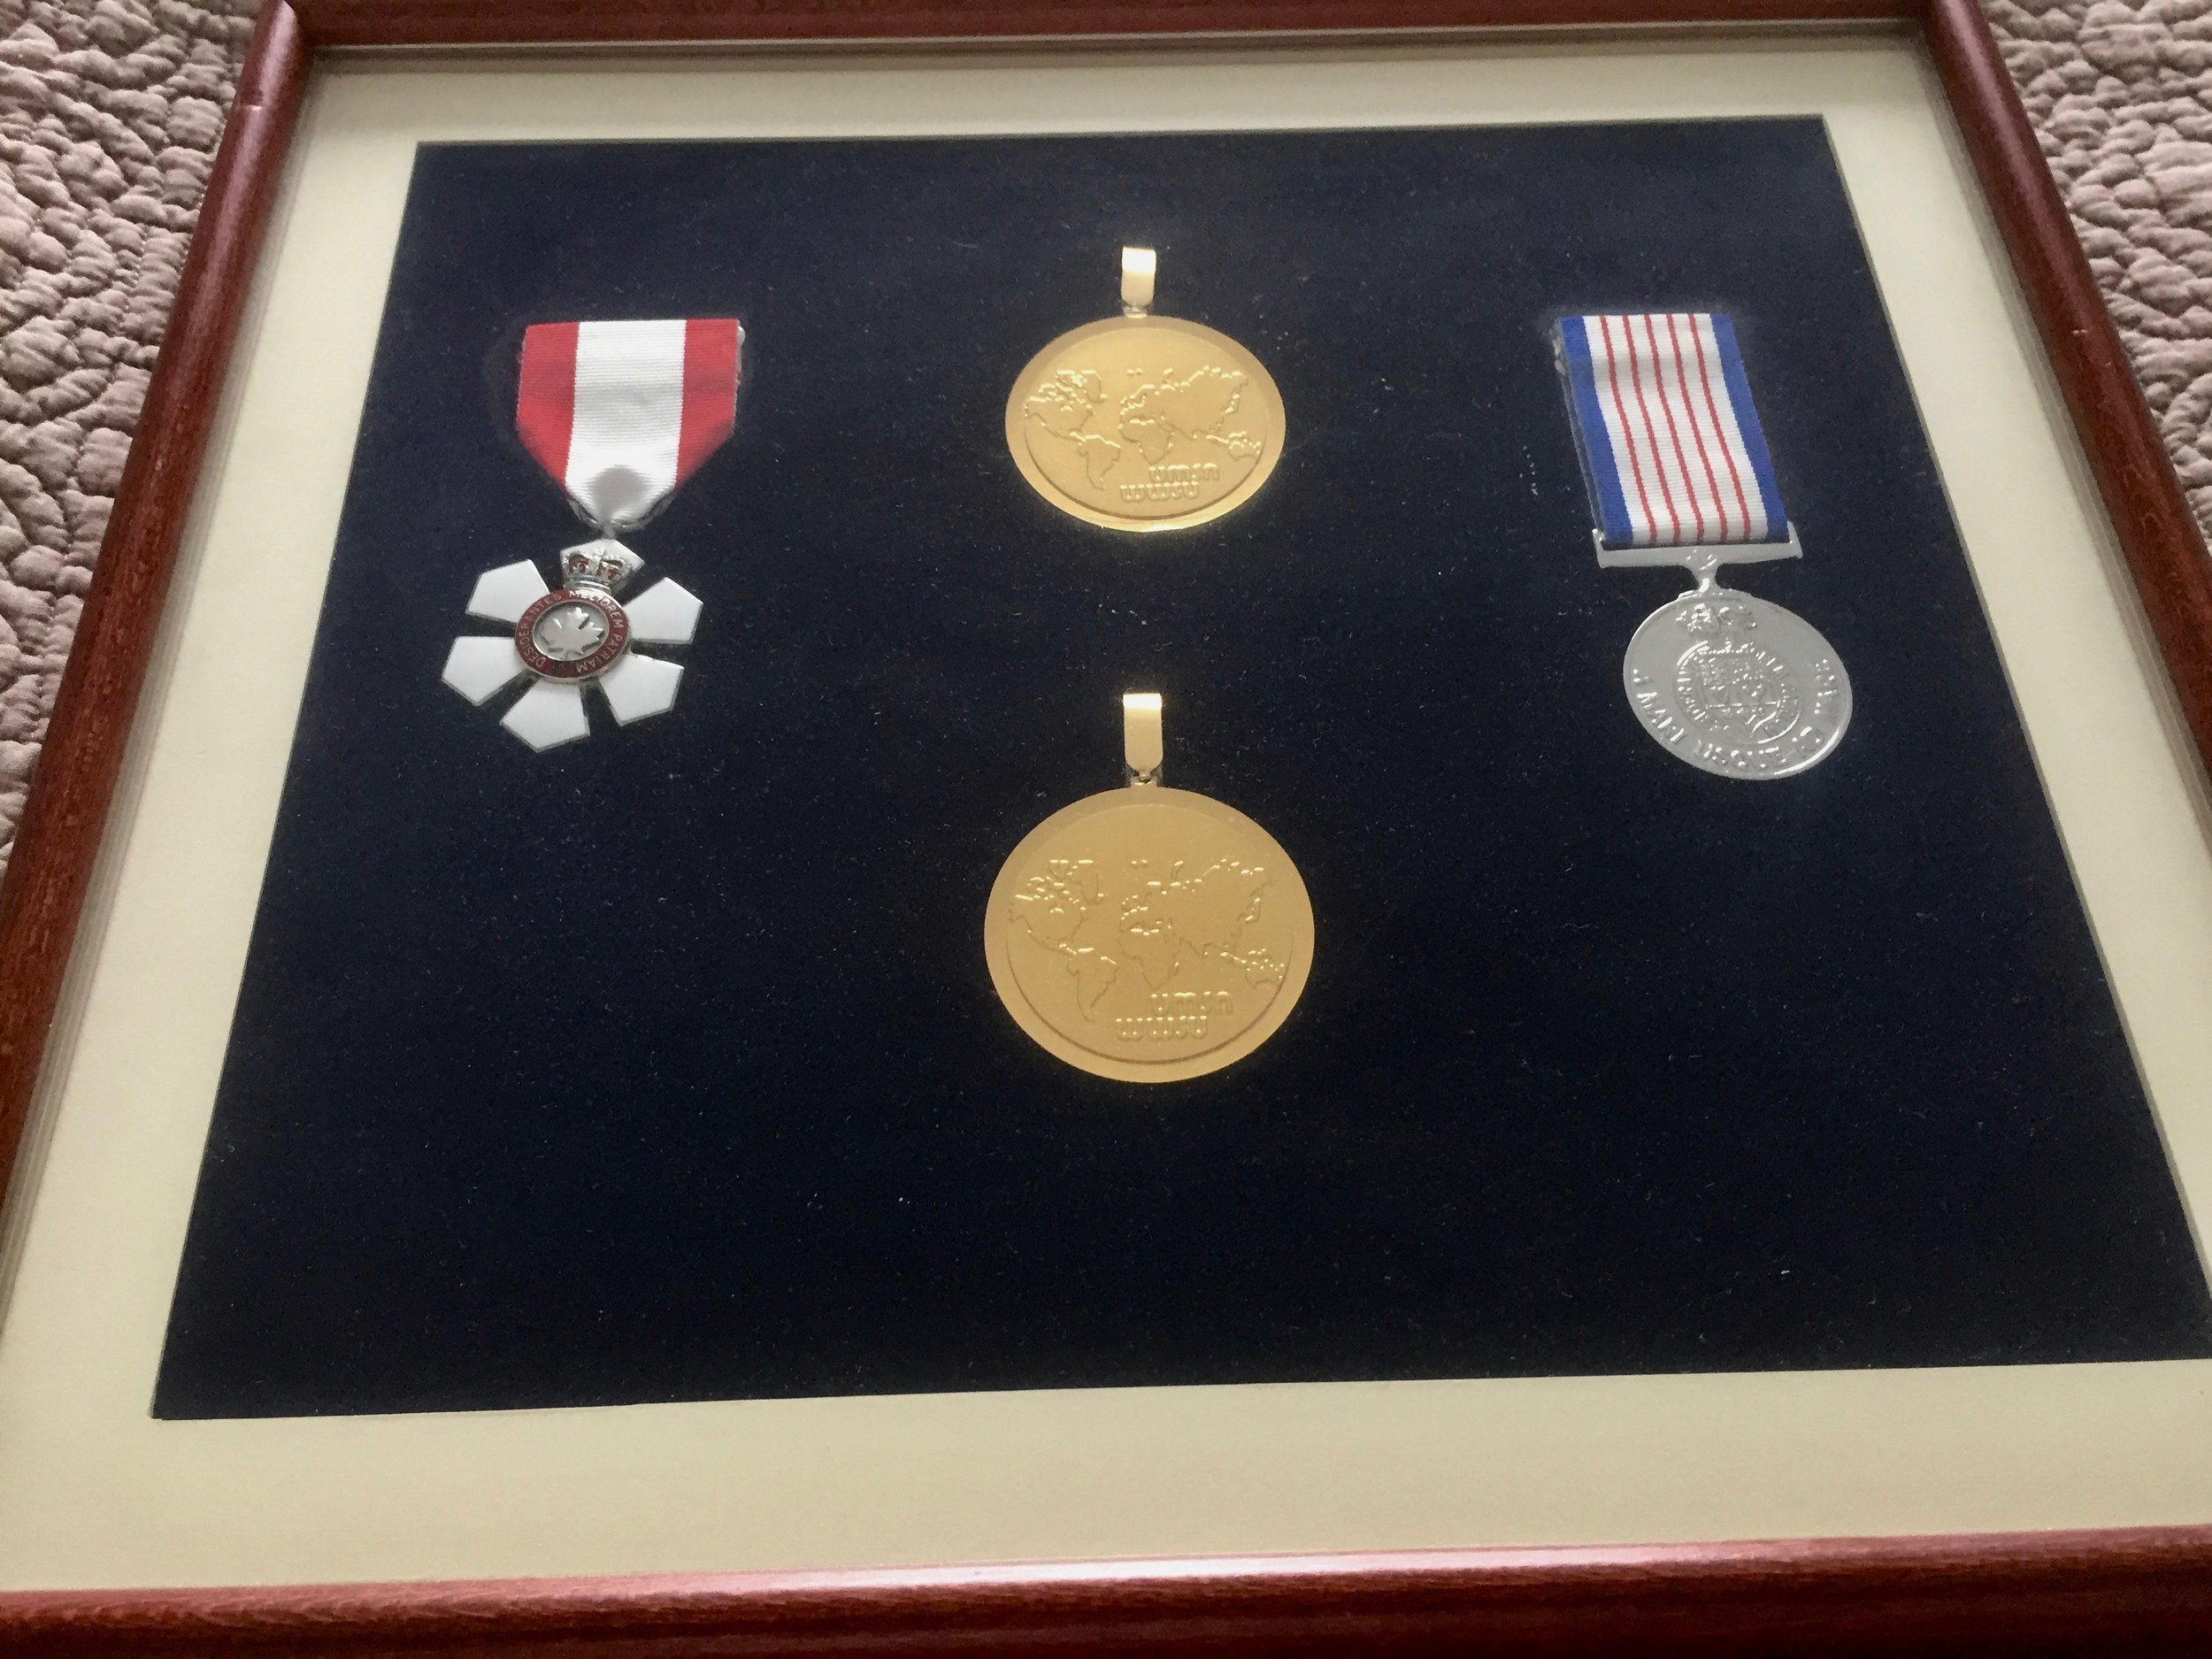 Order of Canada & World Champion Overall Medals